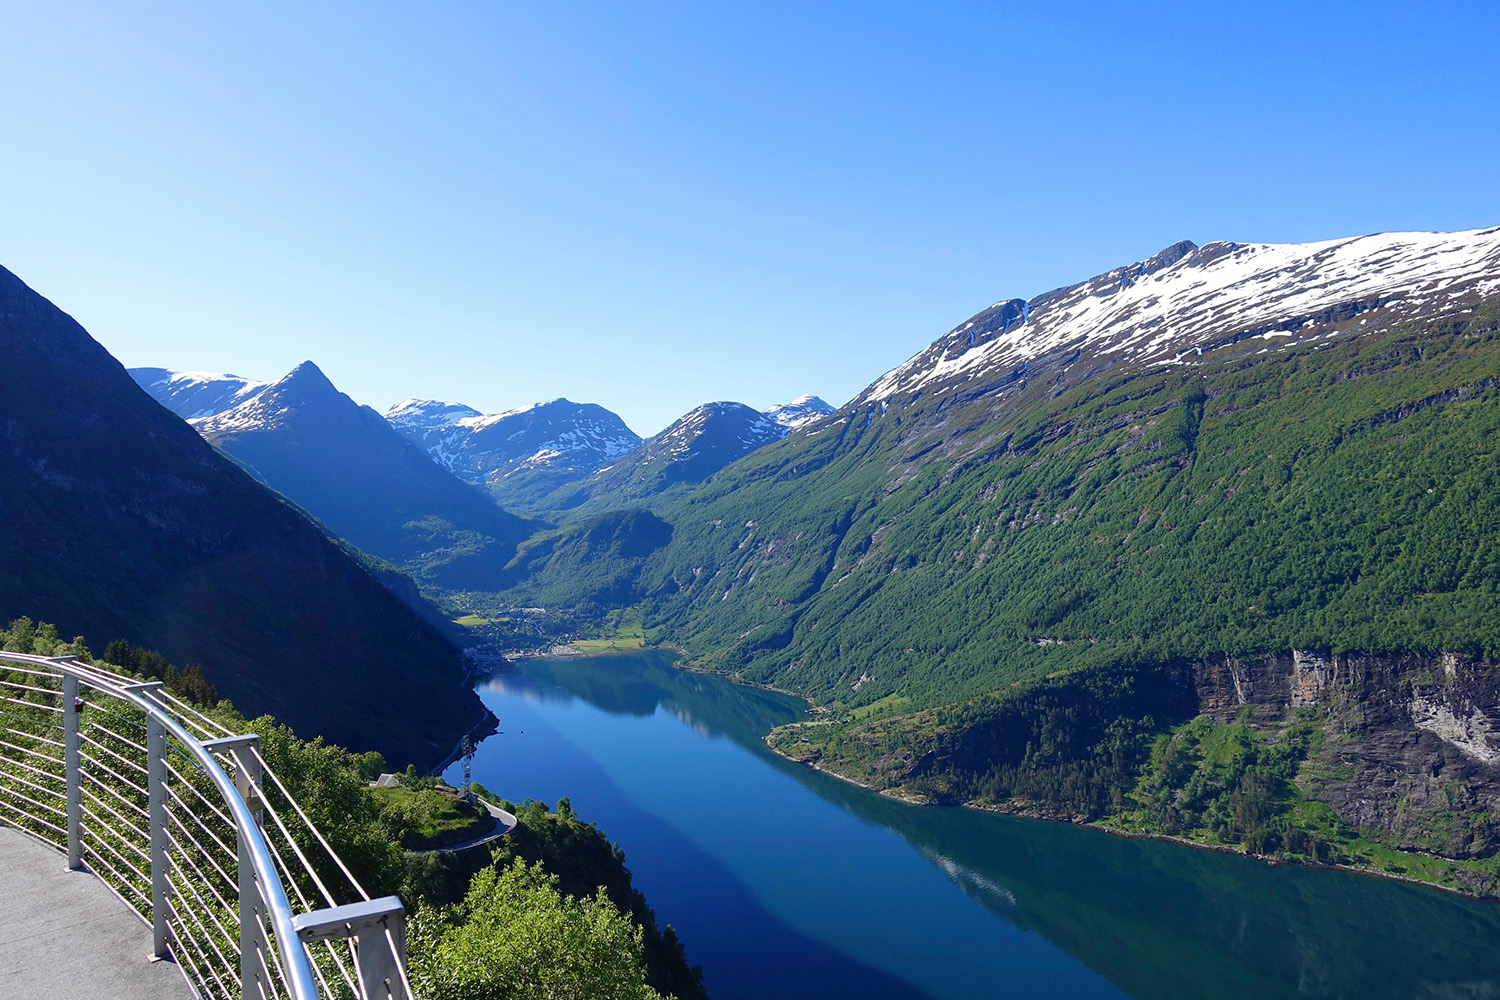 fjords-roads-Adventure-Travel-Norway-kopi.jpg